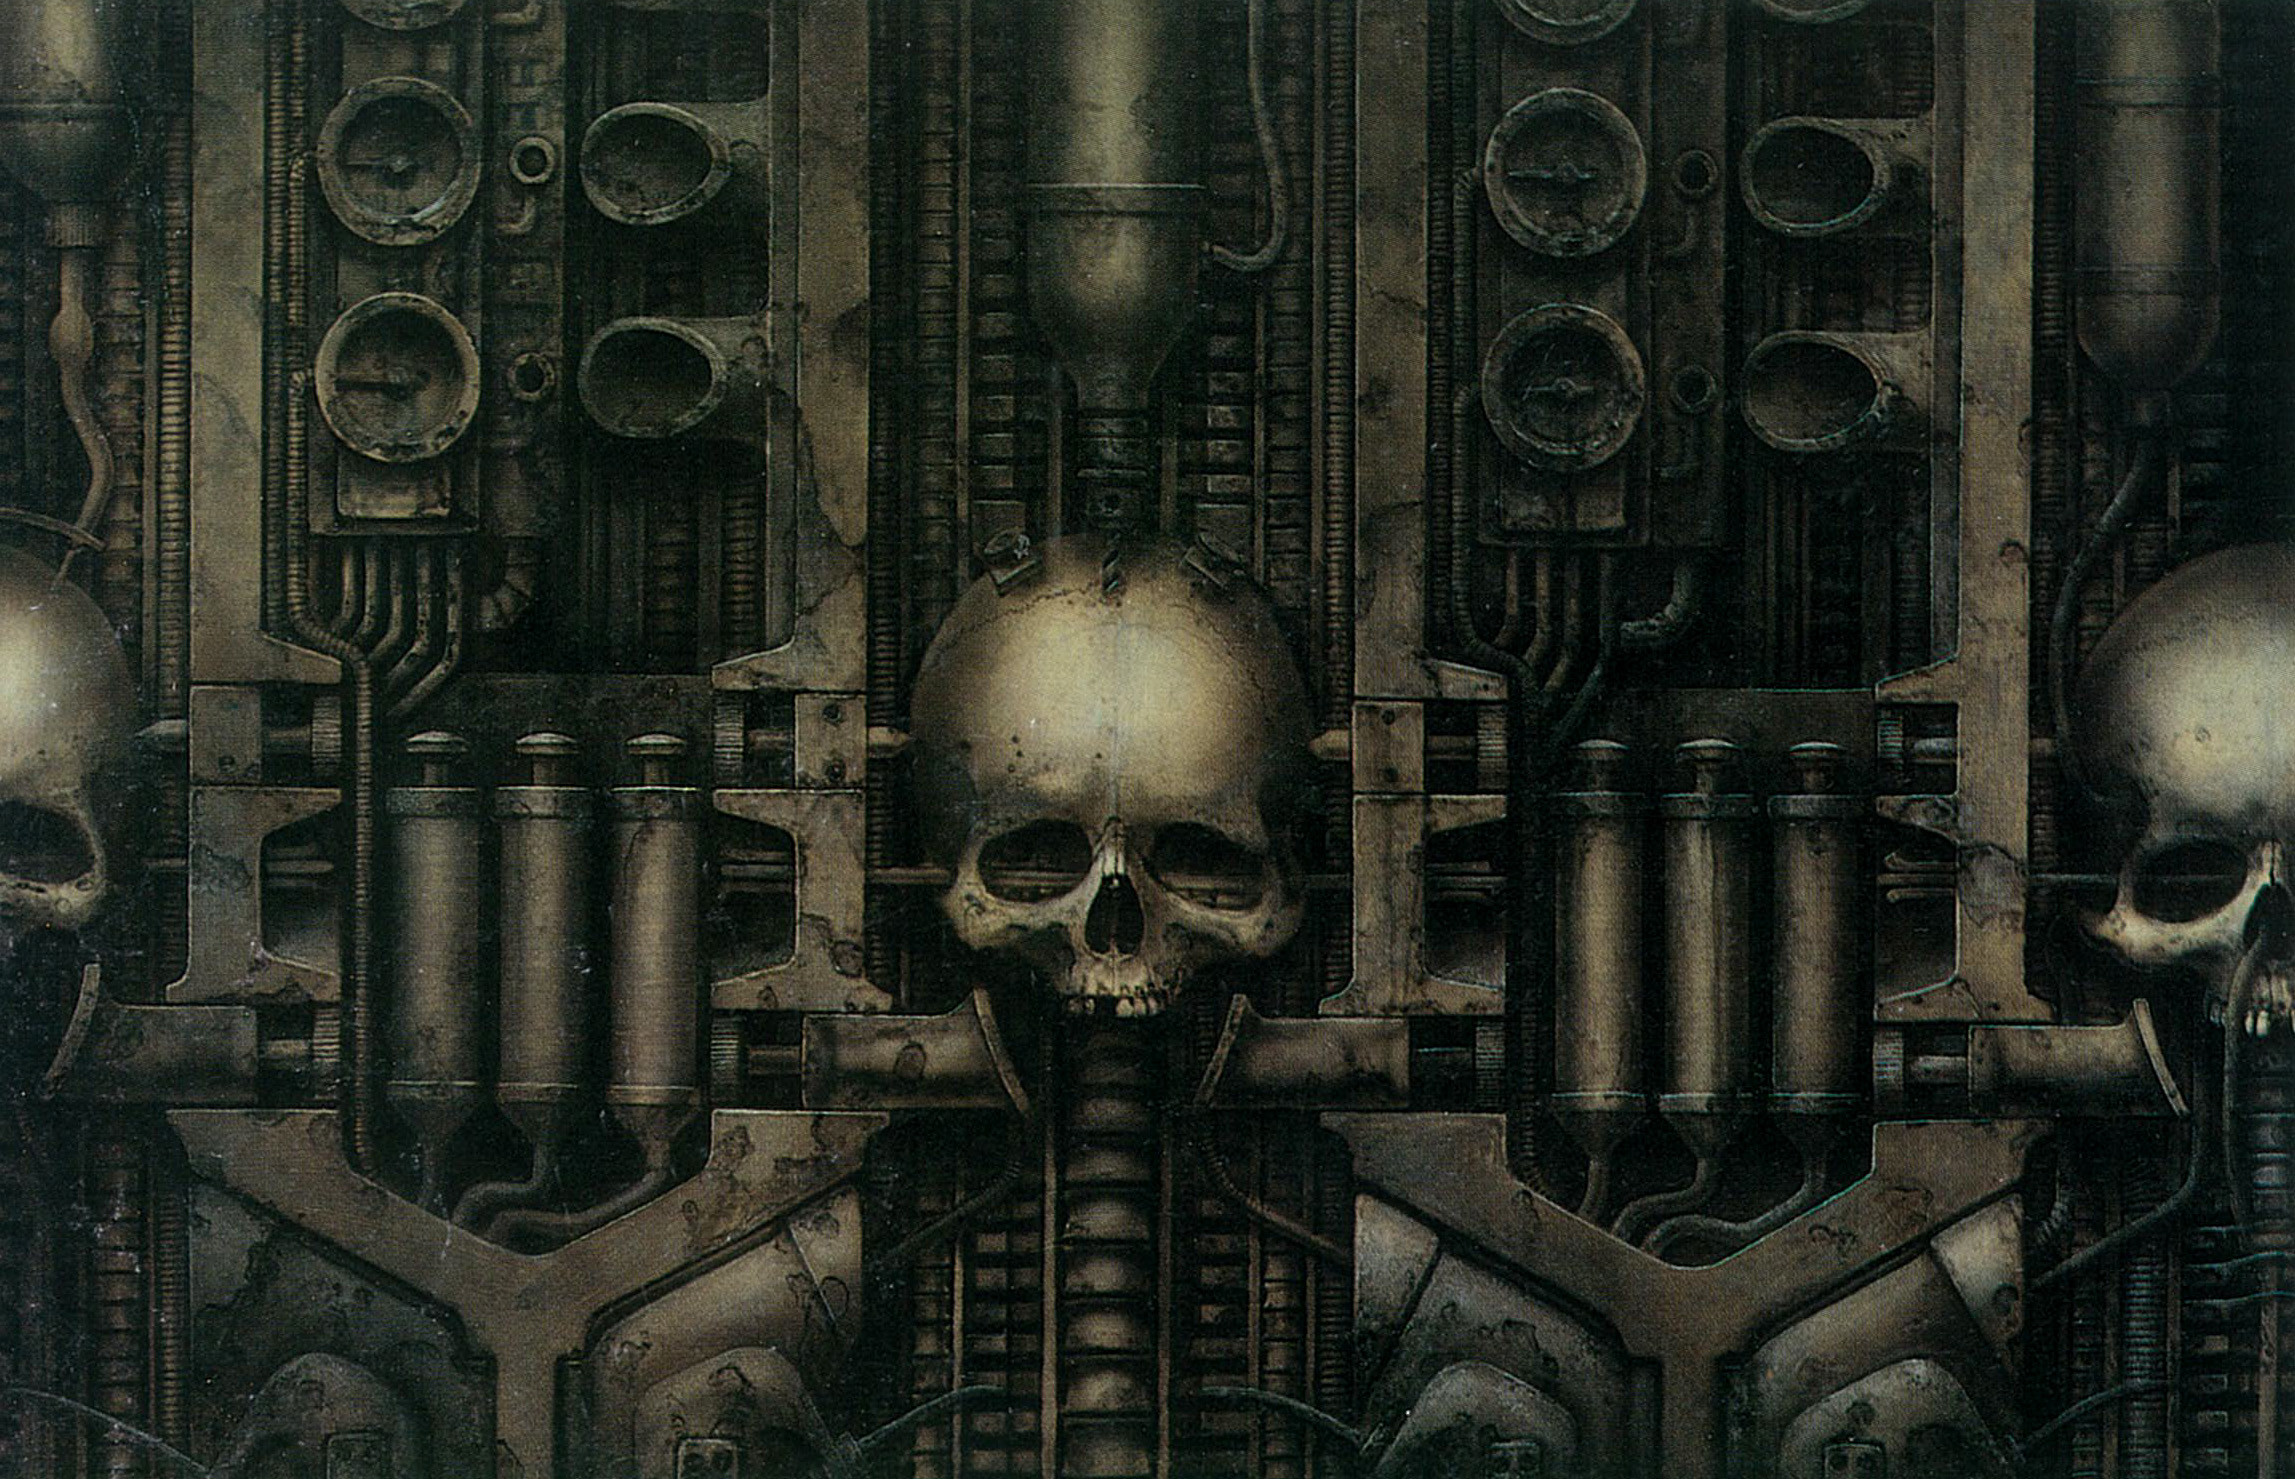 Biomechanical HD Wallpaper (68+ images) H.r. Giger Wallpaper